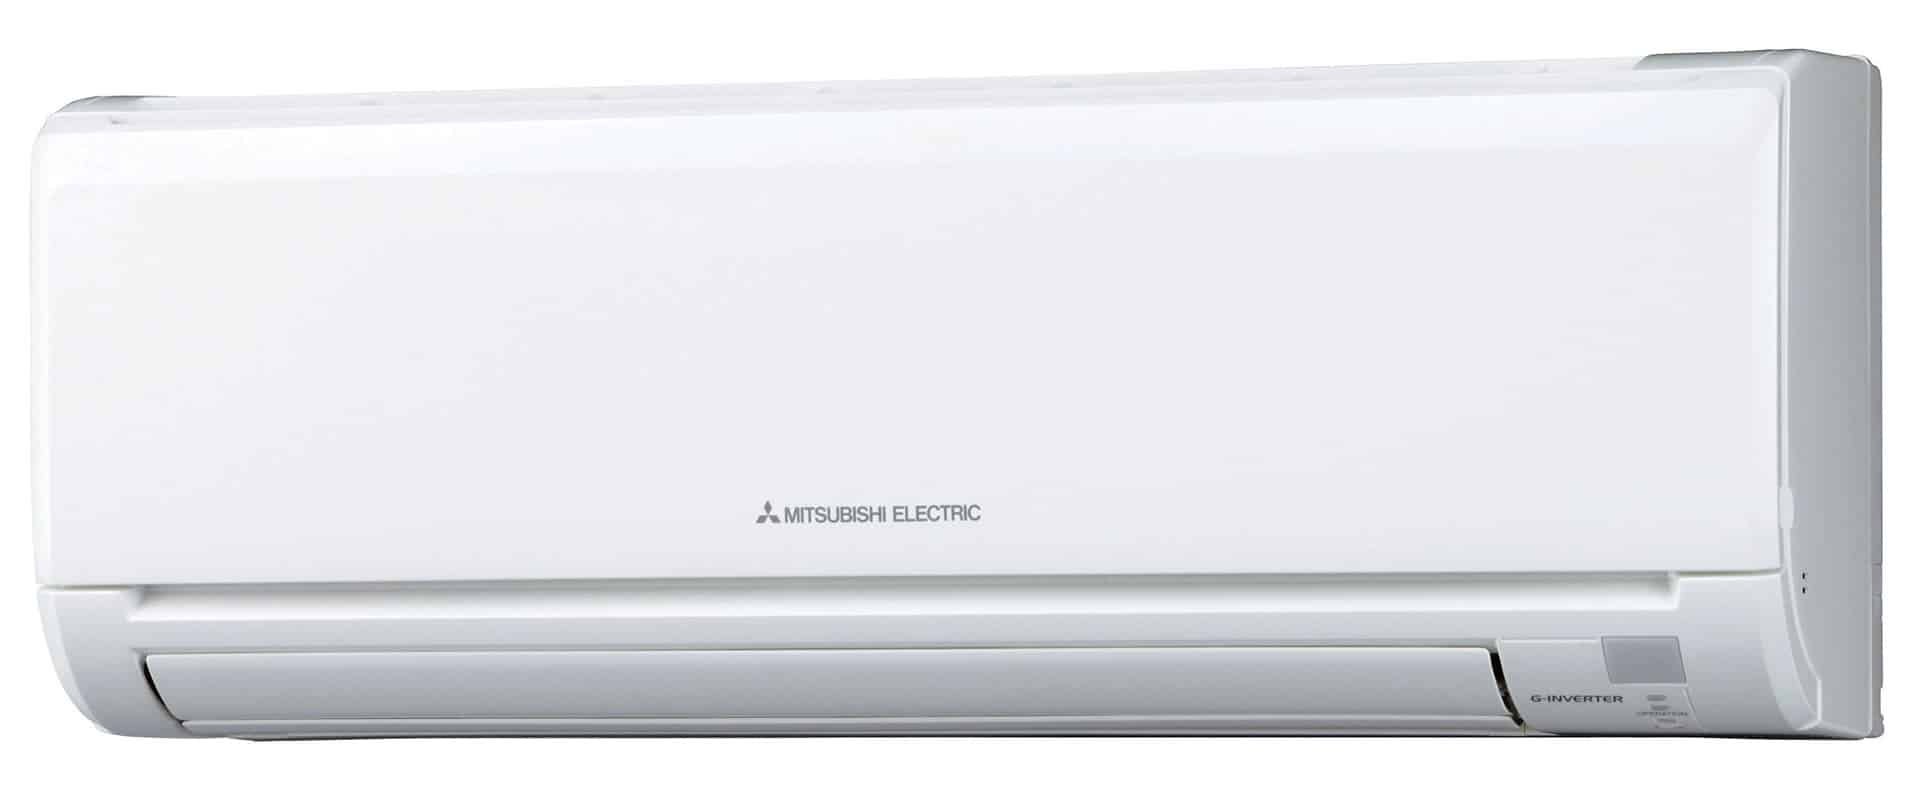 Mitsubishi Electric MSZ-FA25 Series